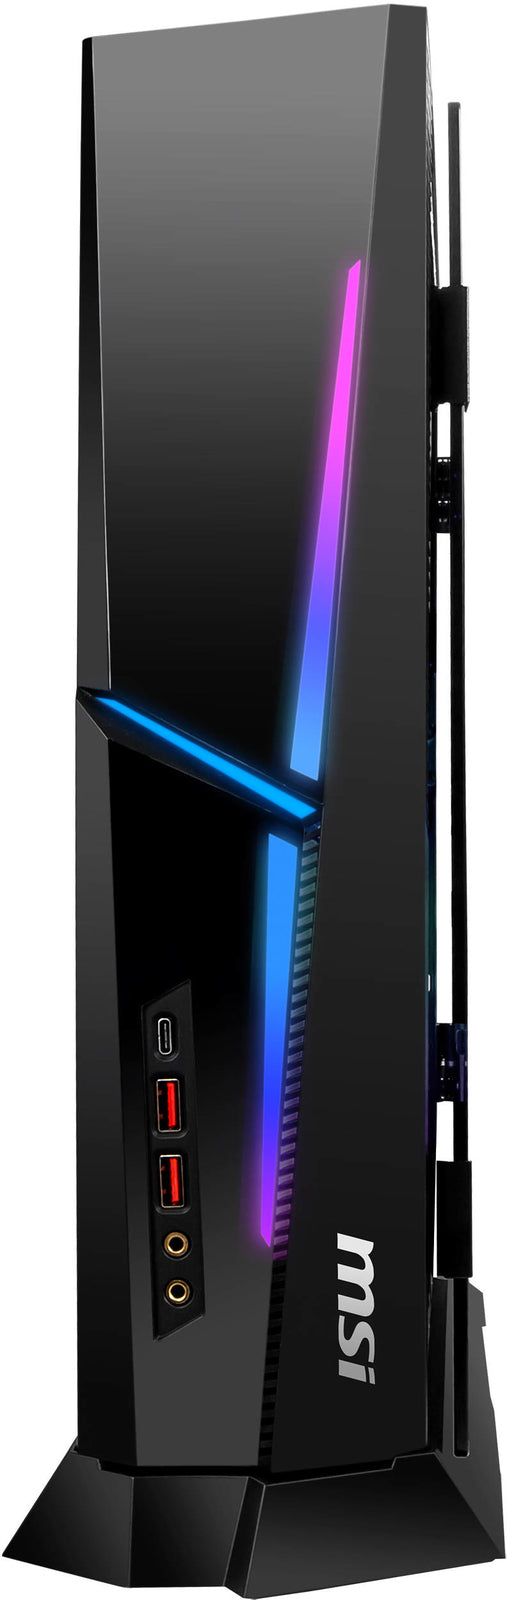 MSI Trident X Plus 9th i7 32GB 2070 Super 512GB 2TB Gaming Desktop